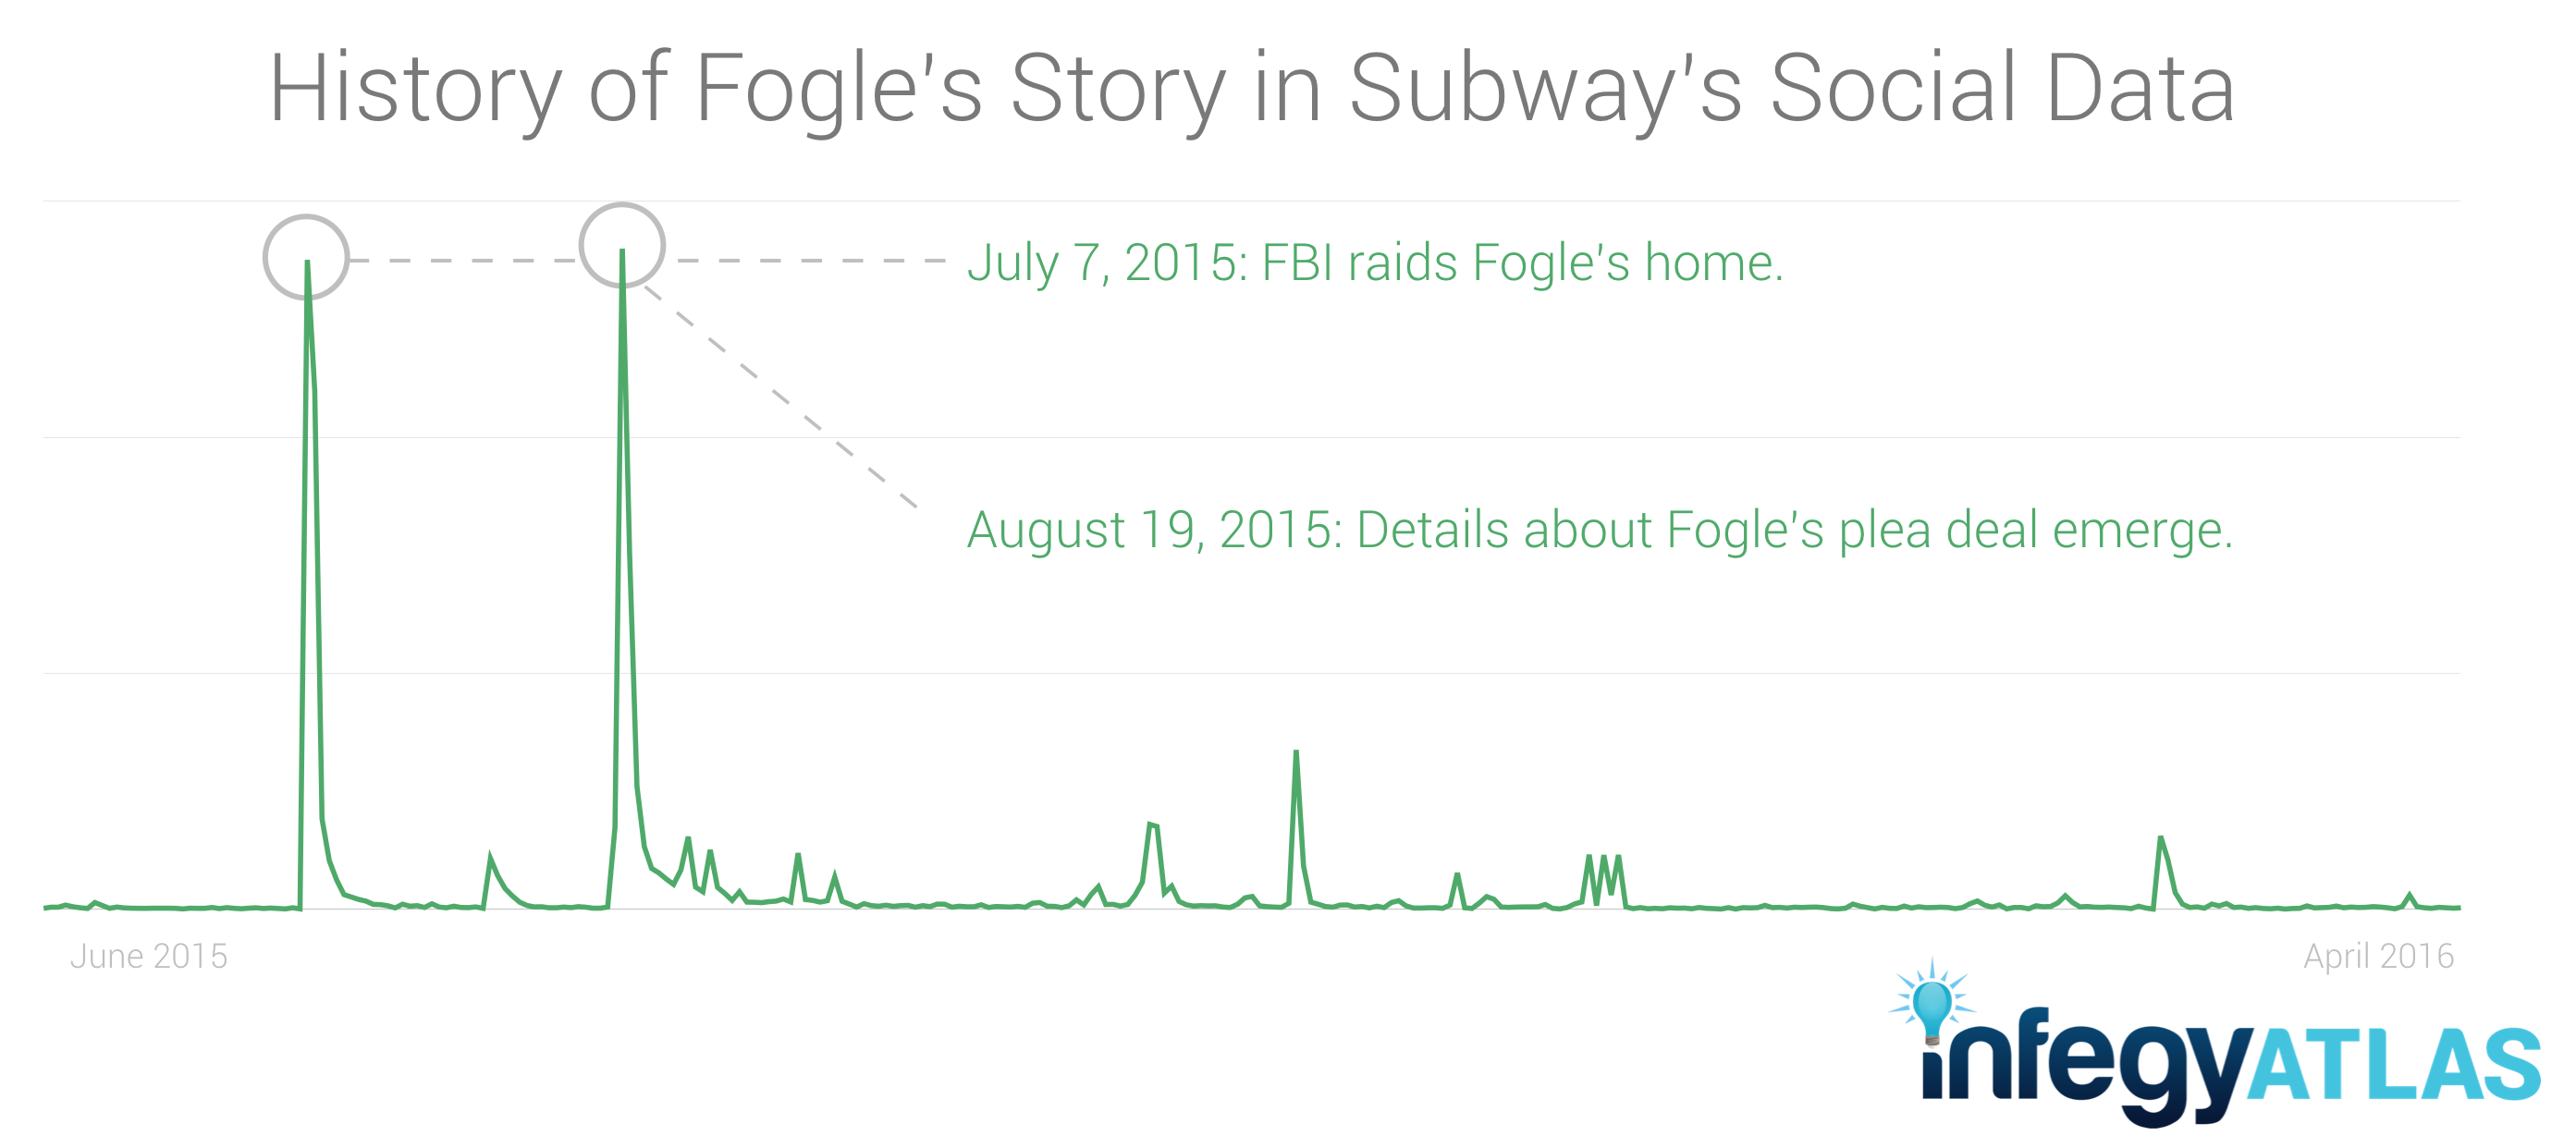 jared-fogle-subway-social-data.png